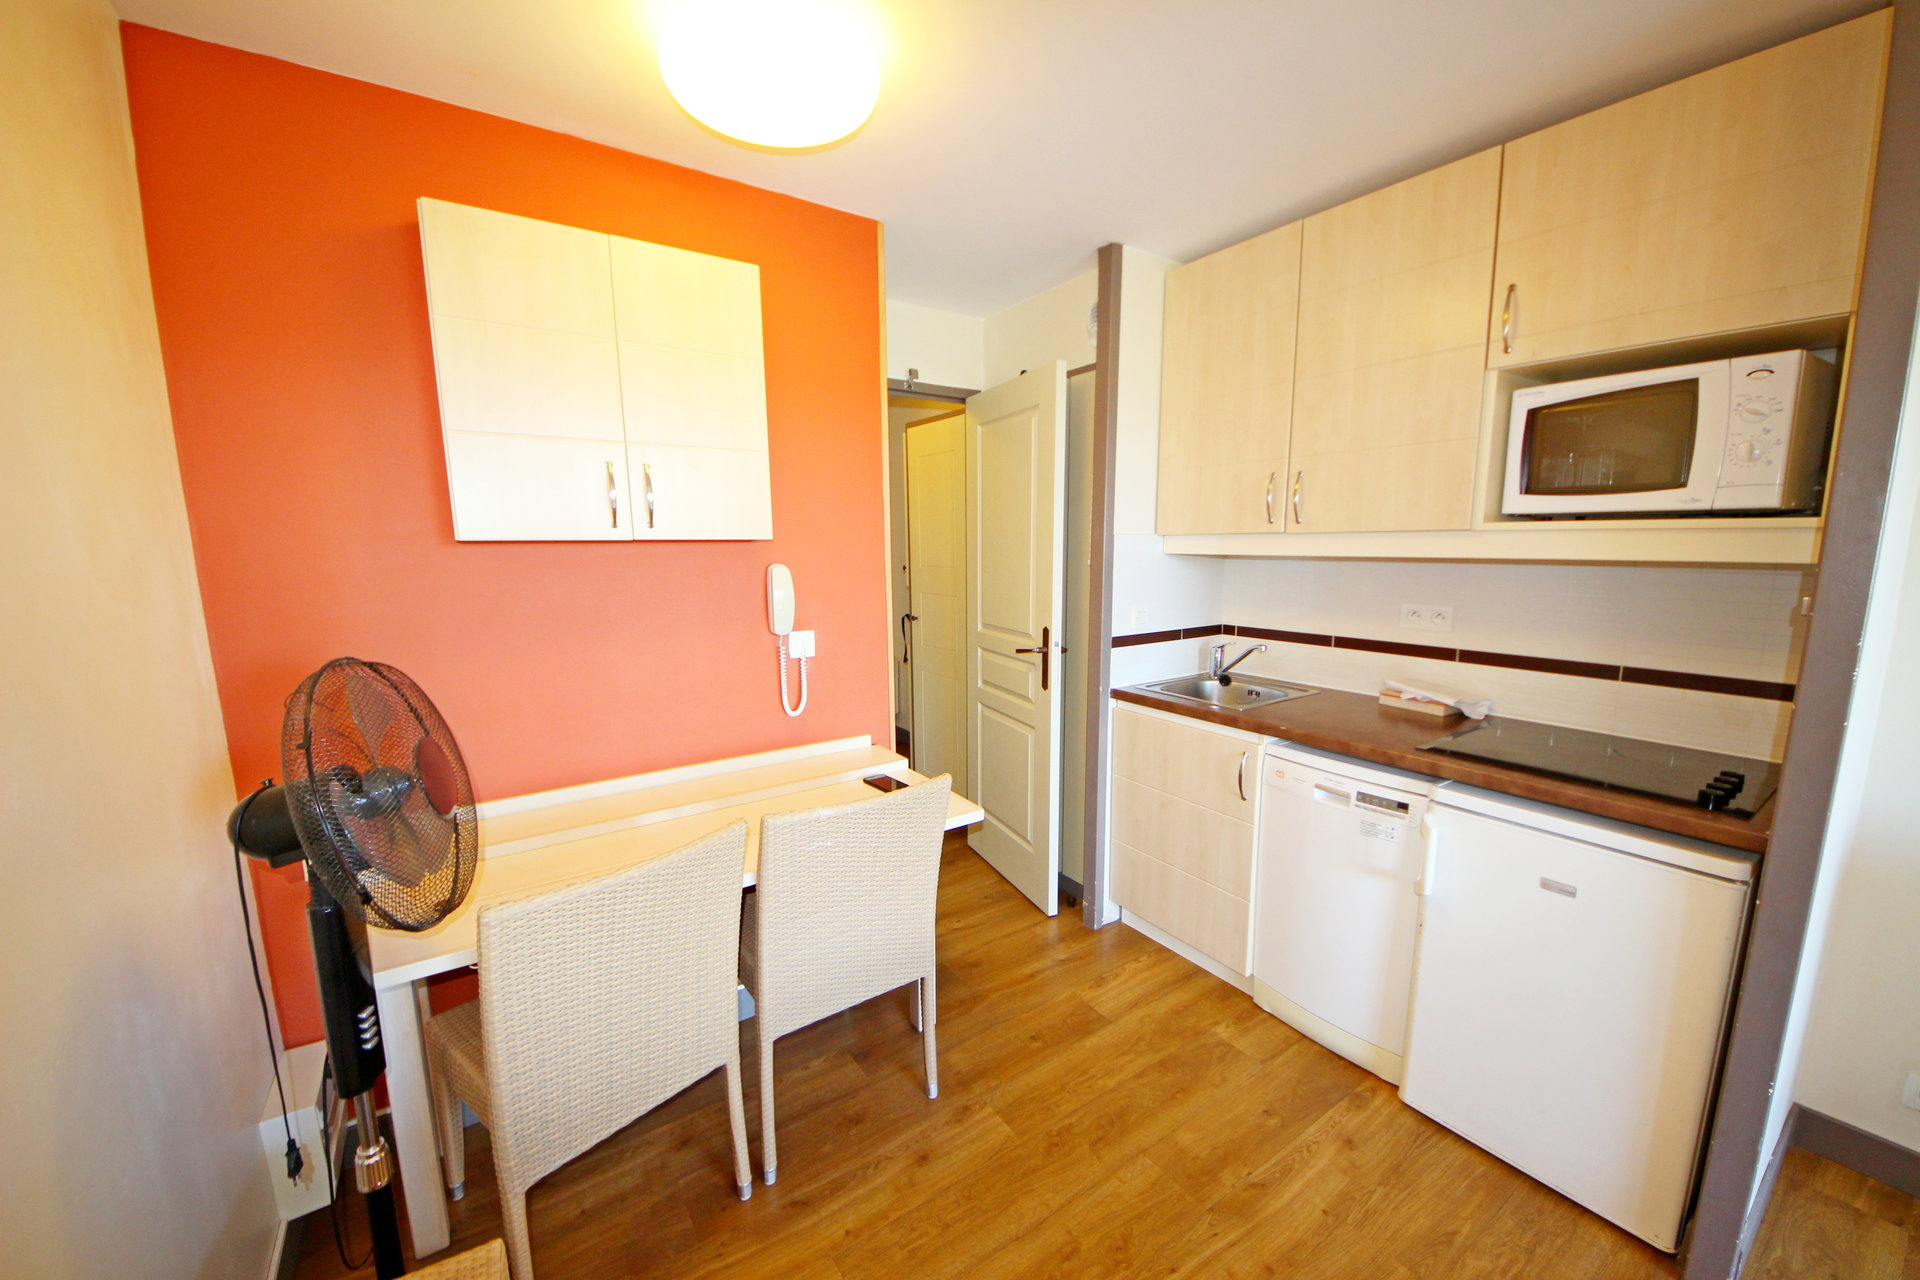 ApartmentStage 1st, View Garden, position south west, General condition Good, Kitchen Kitchenette, ...